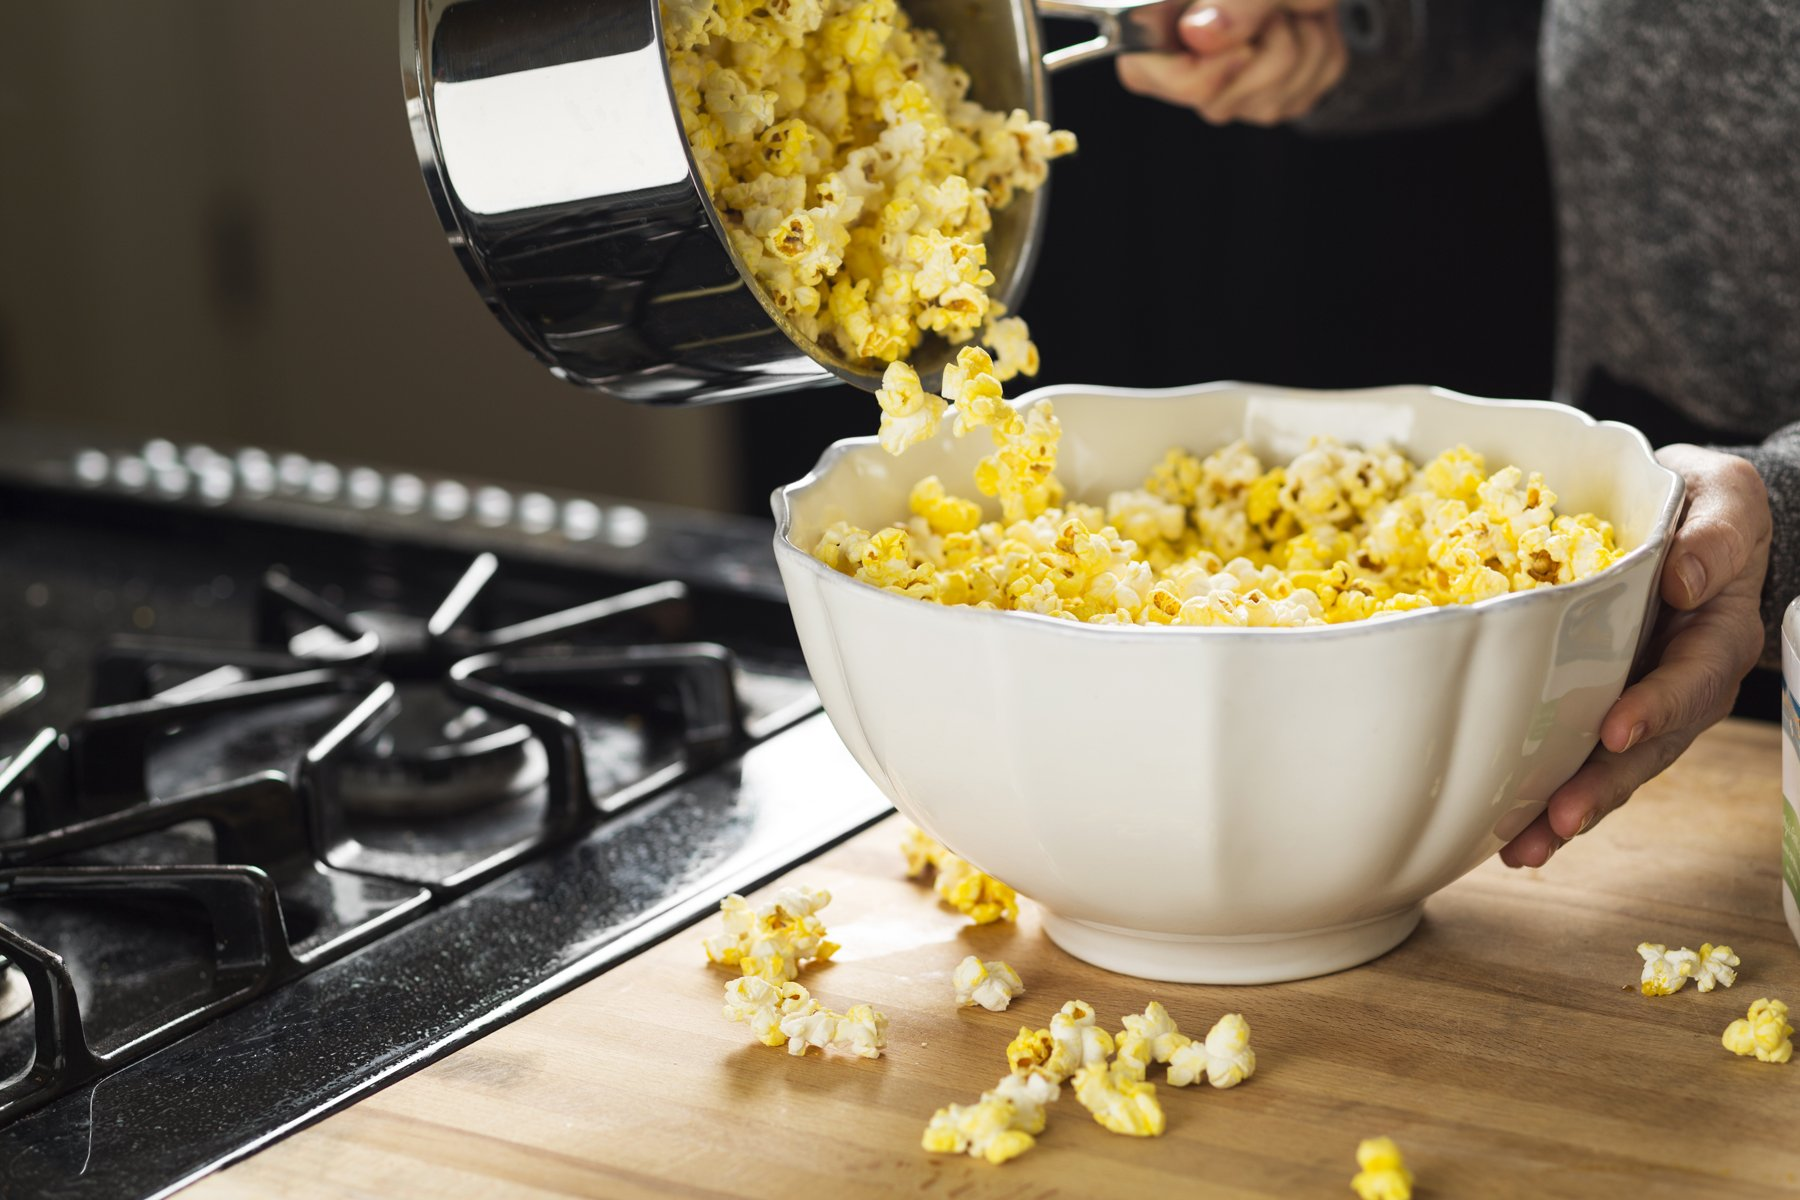 Franklin's Organic Popping Corn (7 lbs). Make Movie Theater Popcorn at Home. by Franklin's Gourmet Popcorn (Image #7)